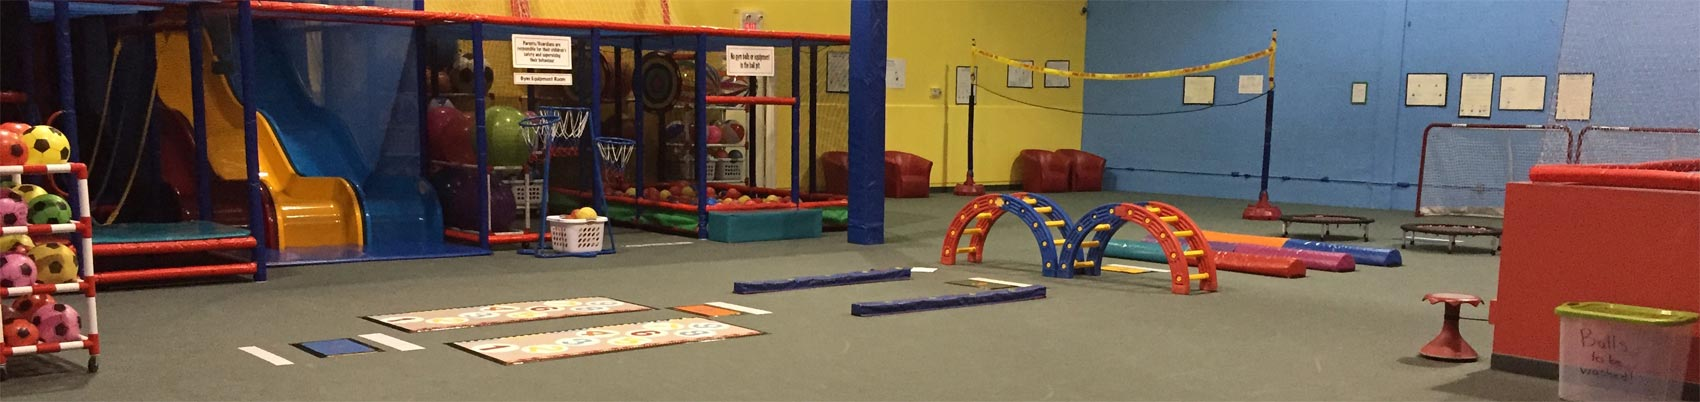 kids gym in mississauga